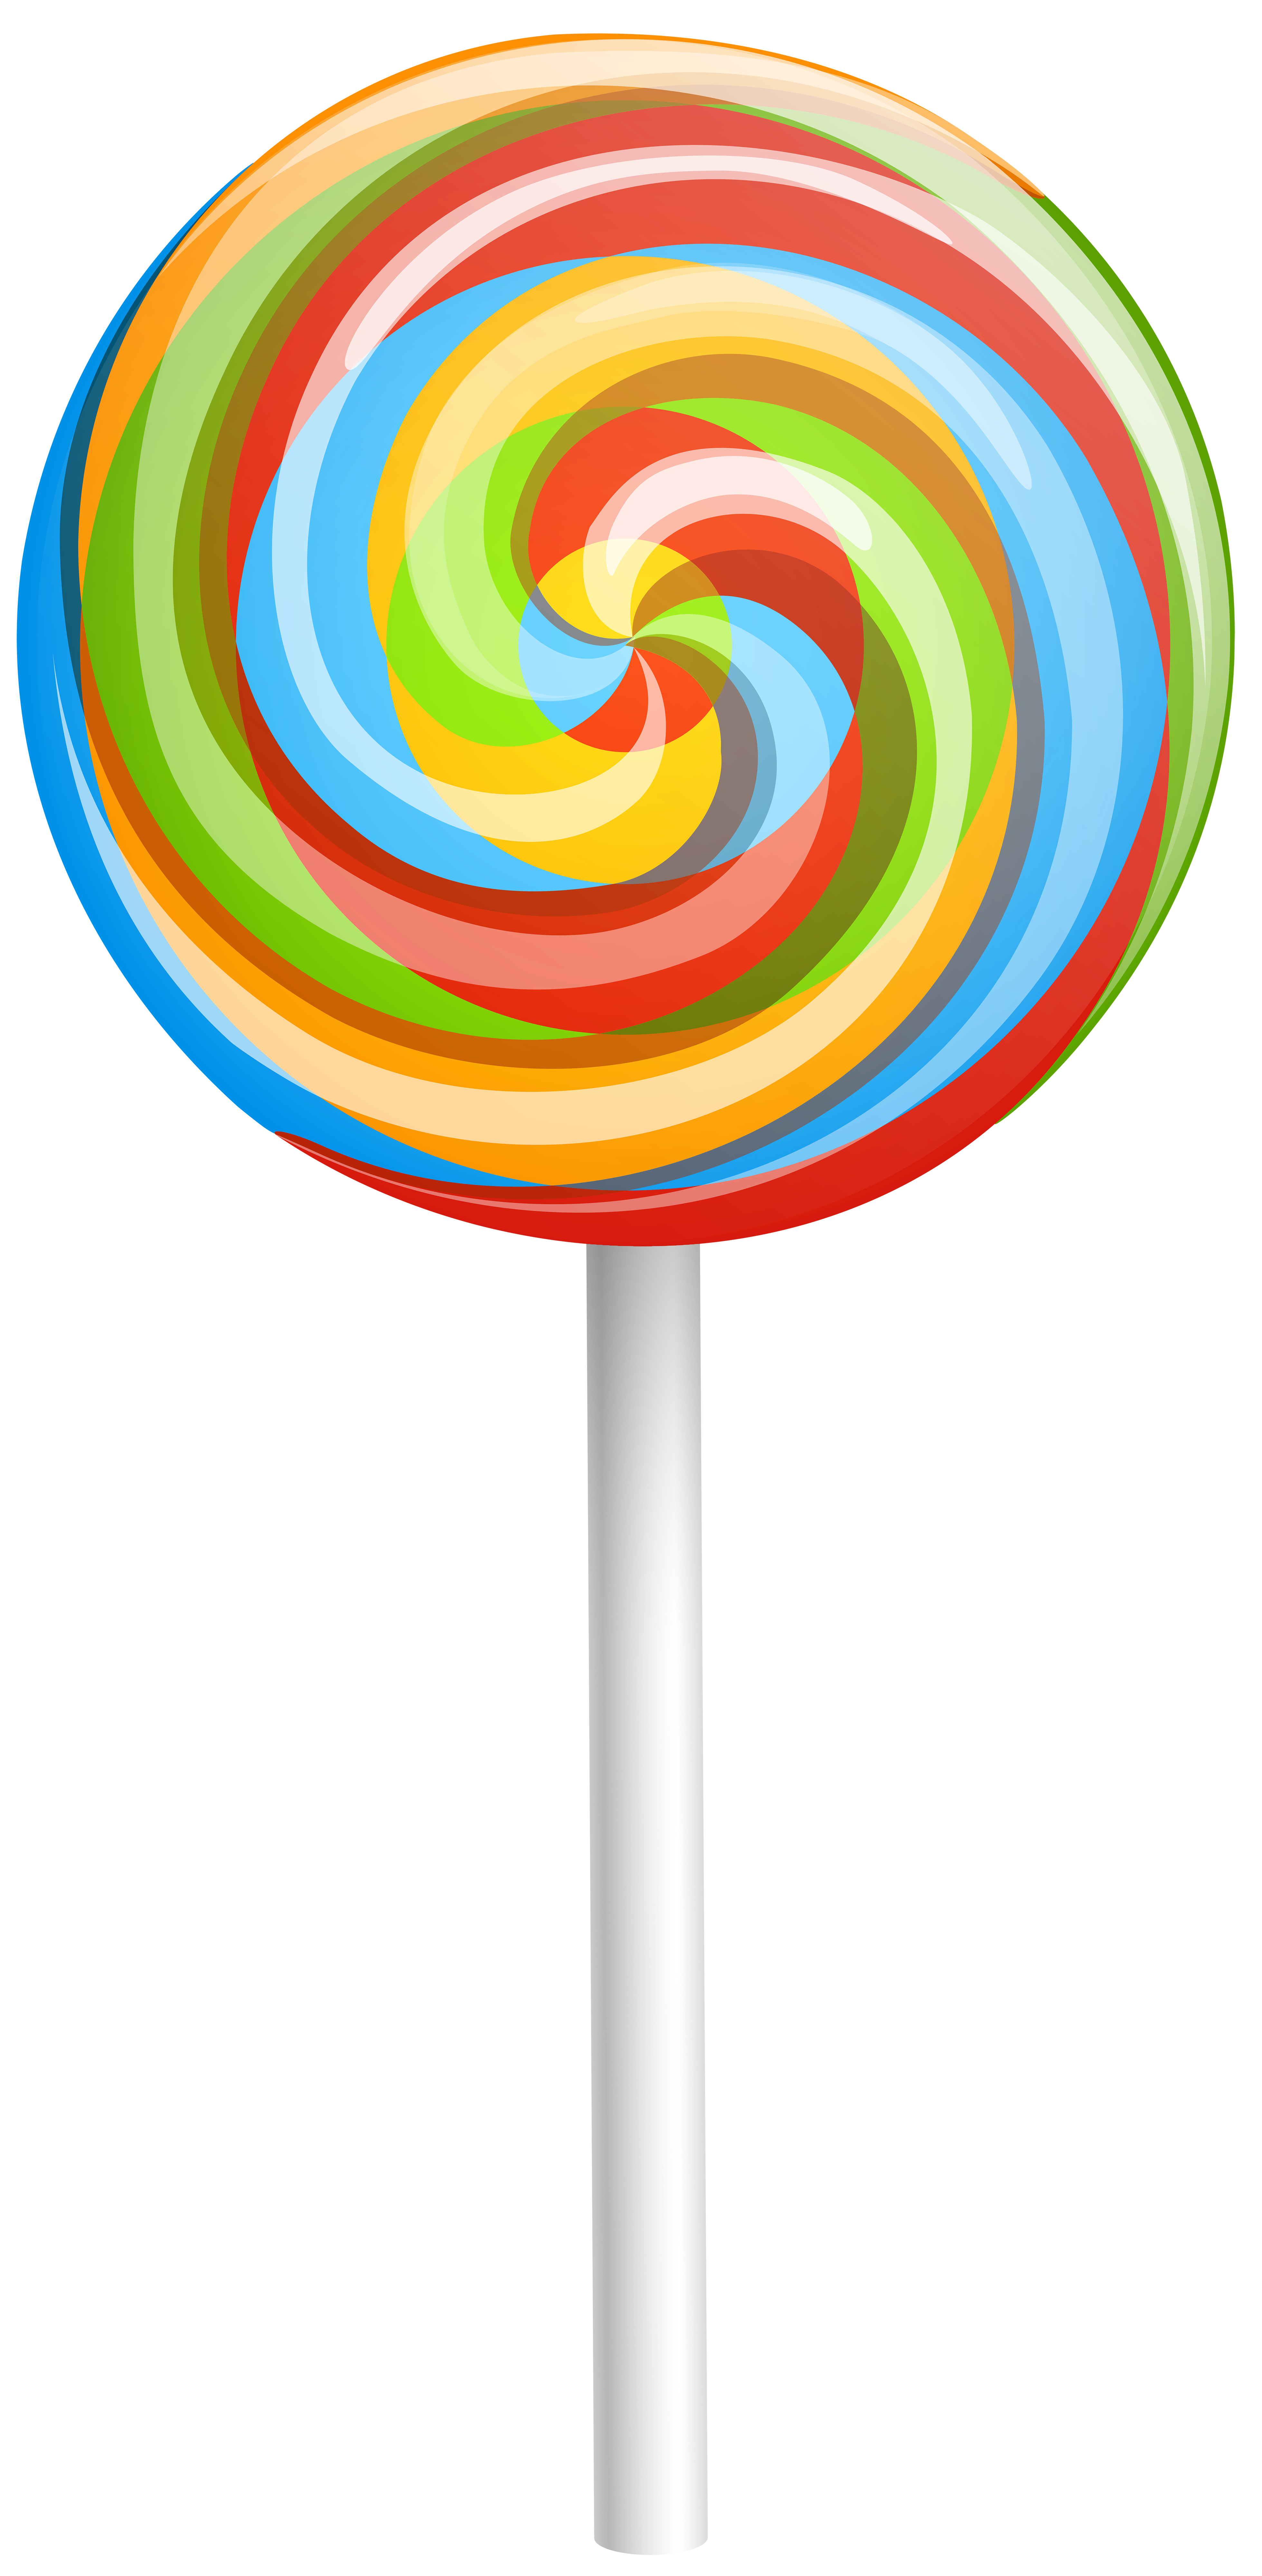 pin by reclame quintens on sdfvqsd pinterest swirl lollipops rh pinterest com lollipop clipart black and white lollipop clip art free printables